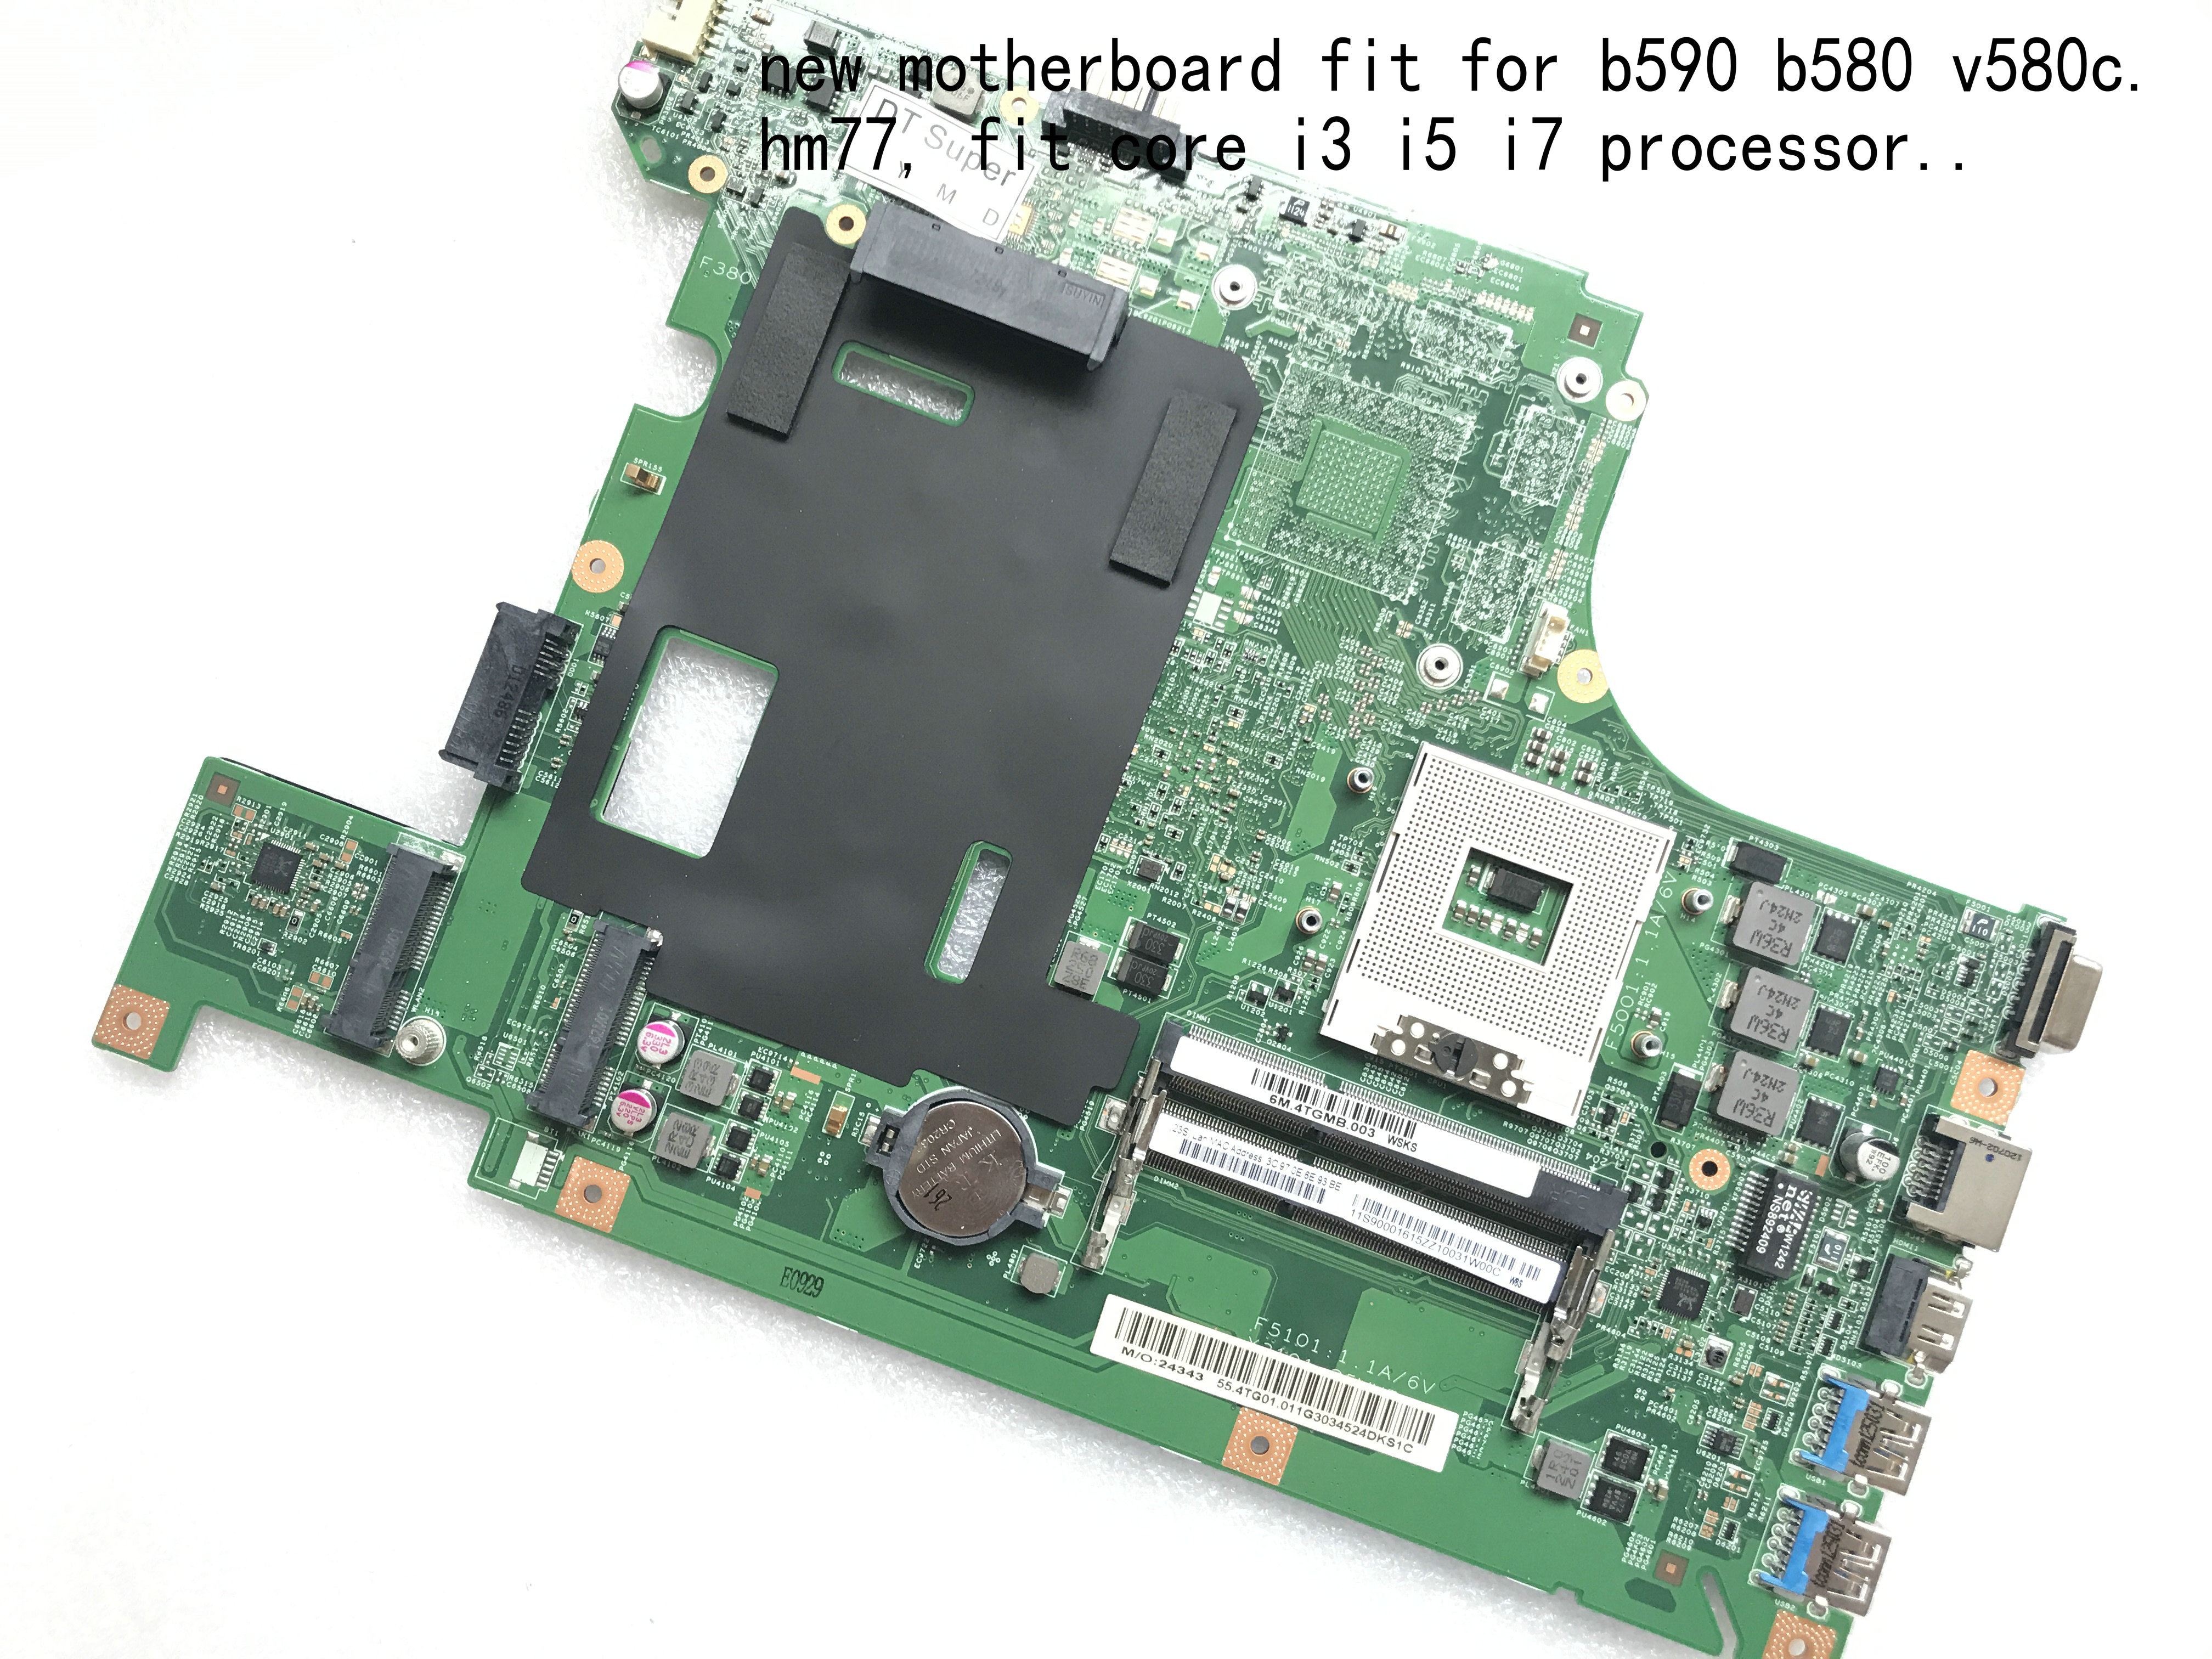 KEFU AVAILABLE , New Item. LA58 MB 11273-1 48.4TE01.011 , For LENOVO B590 B580 V580C Notebook Laptop Motherboard (qualified Ok)